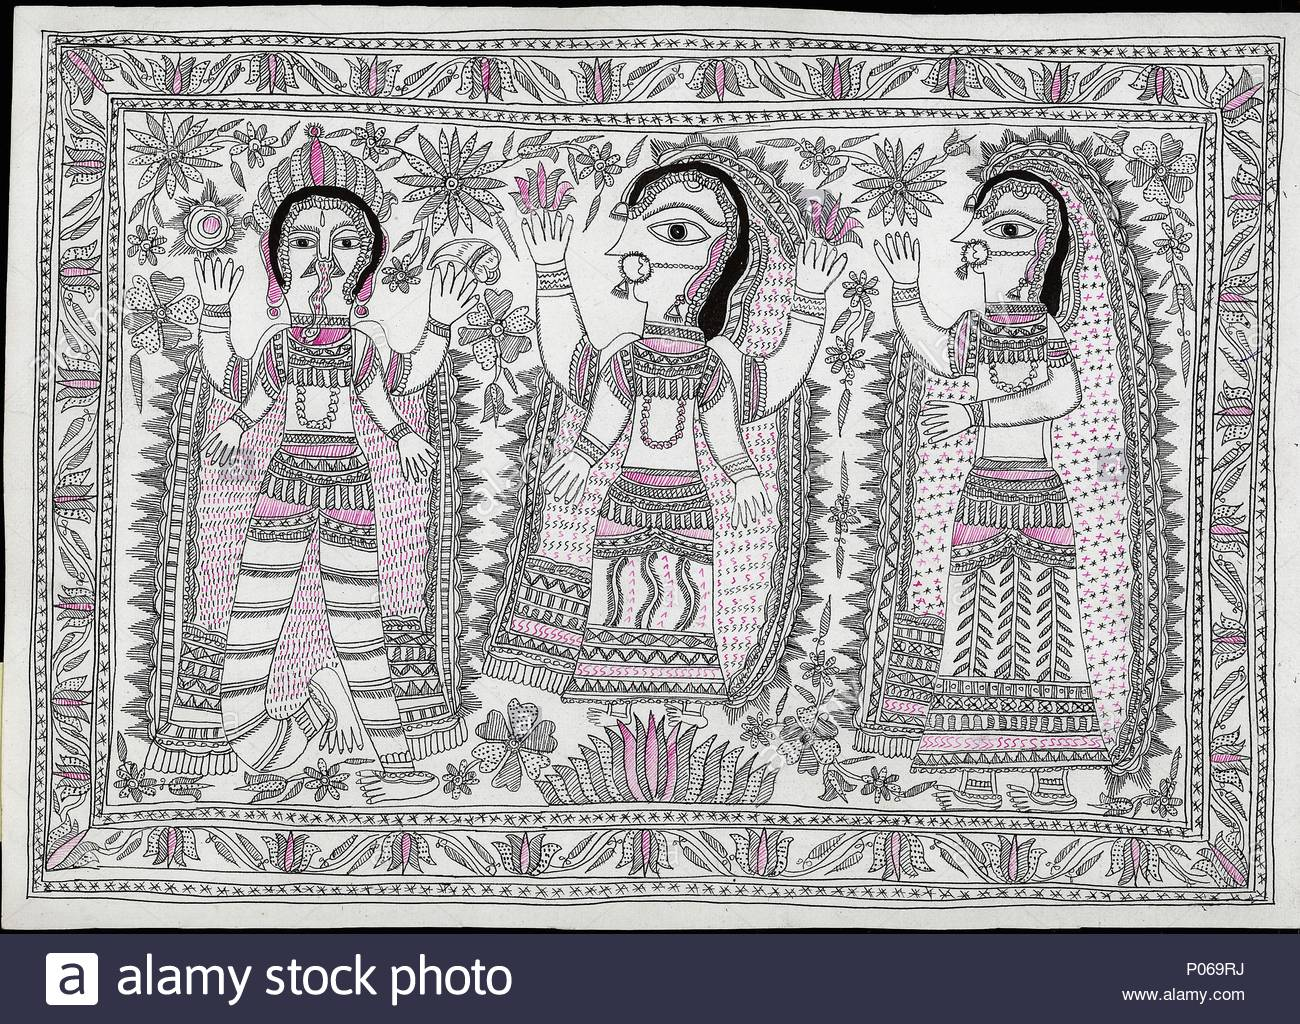 Hindu Gods And Goddesses For More Than 3 000 Years The Women Of The